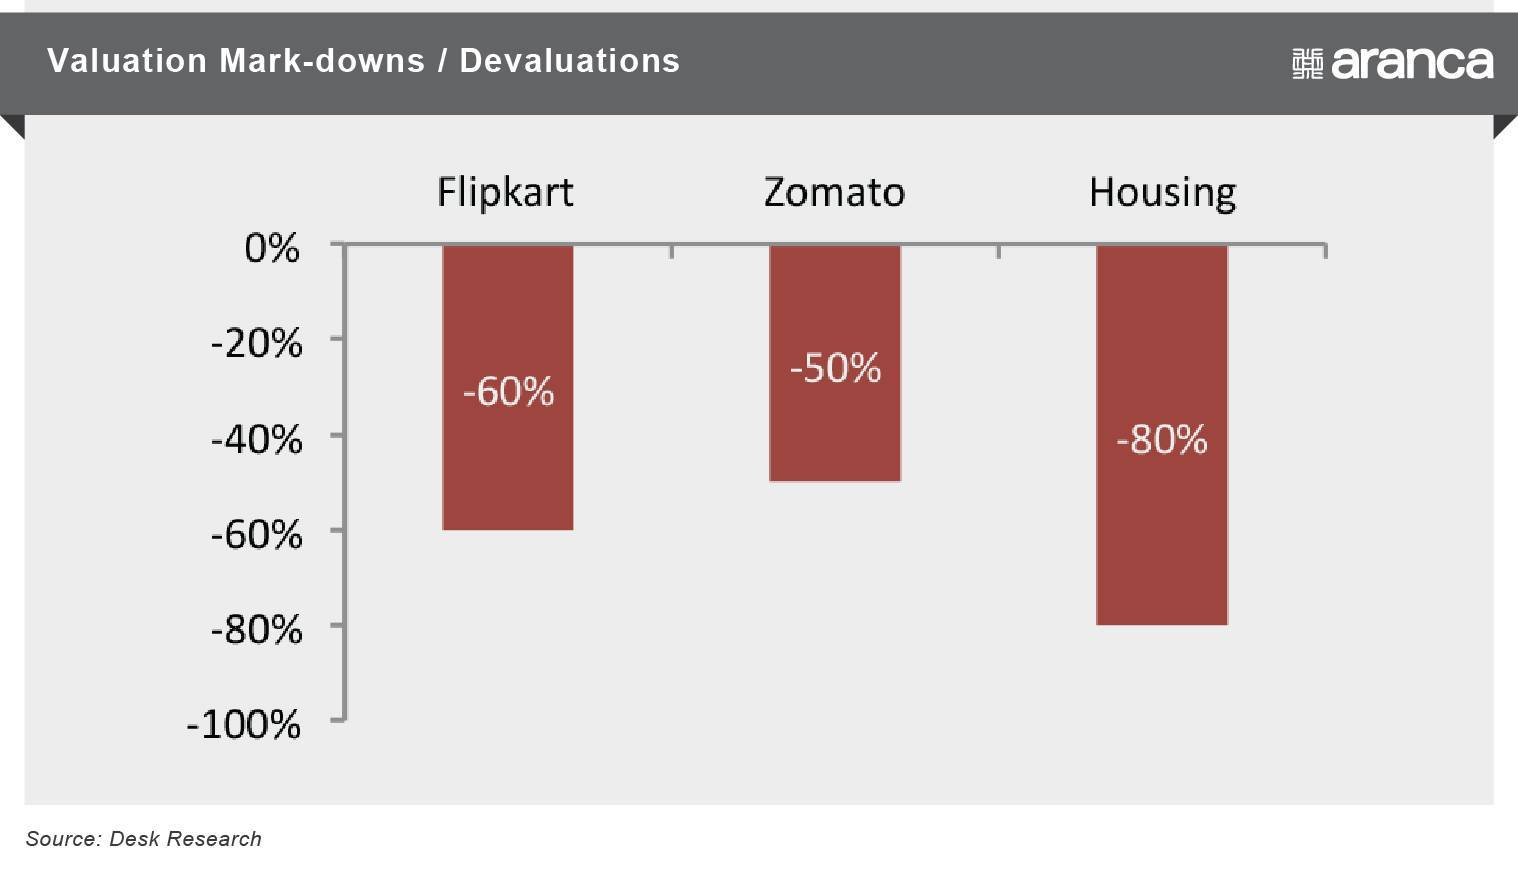 Valuation Mark-downs / Devaluation